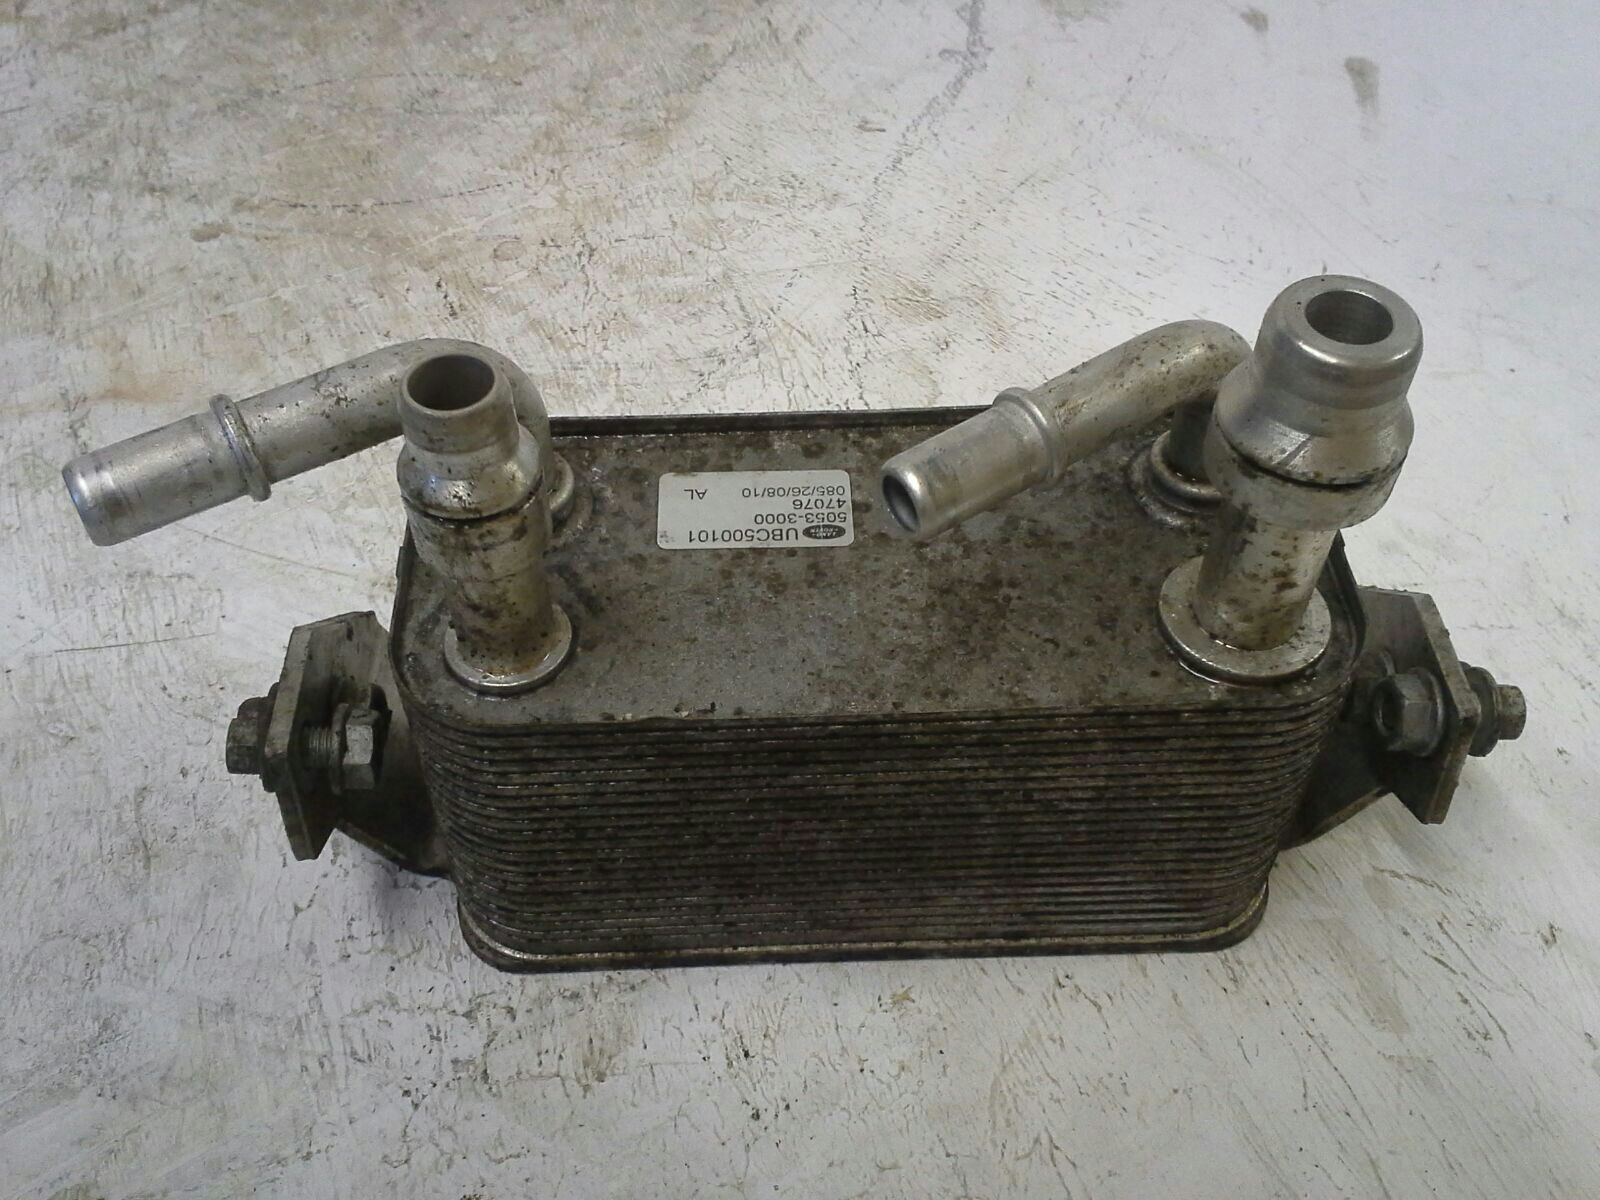 landrover land showthread engine leak discovery images defender attached attachment rover forum oil